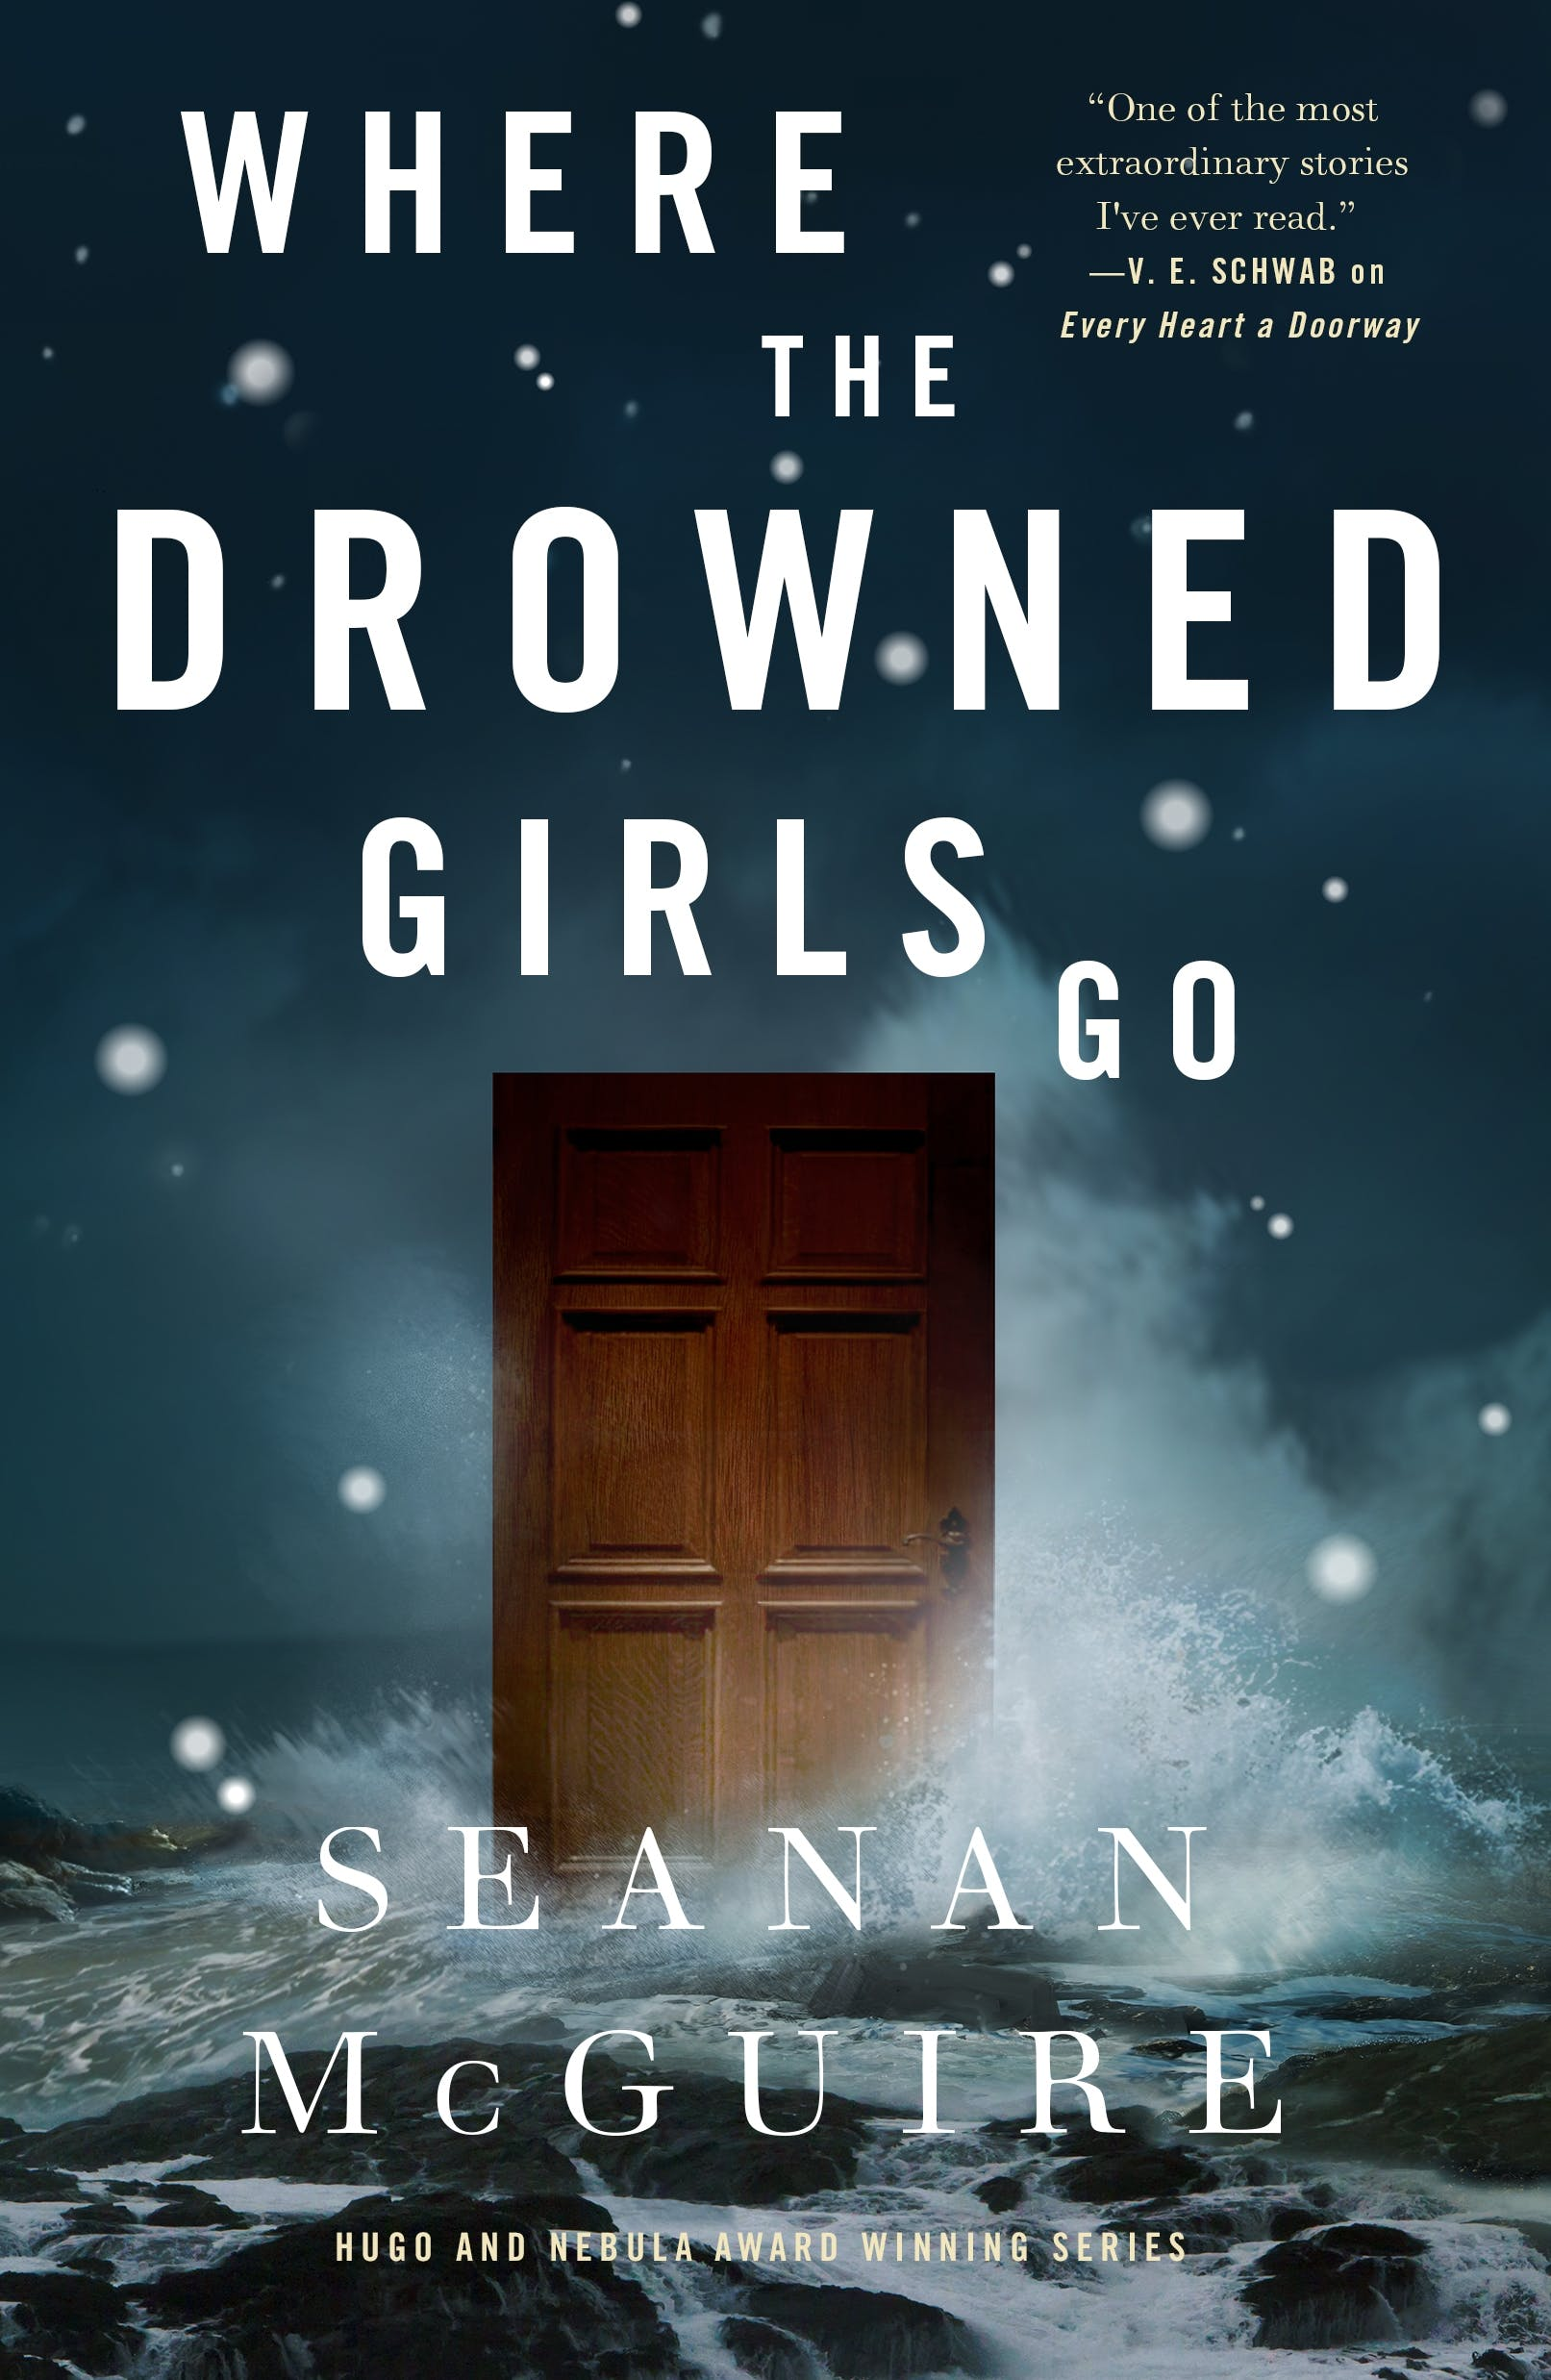 Image of Where the Drowned Girls Go